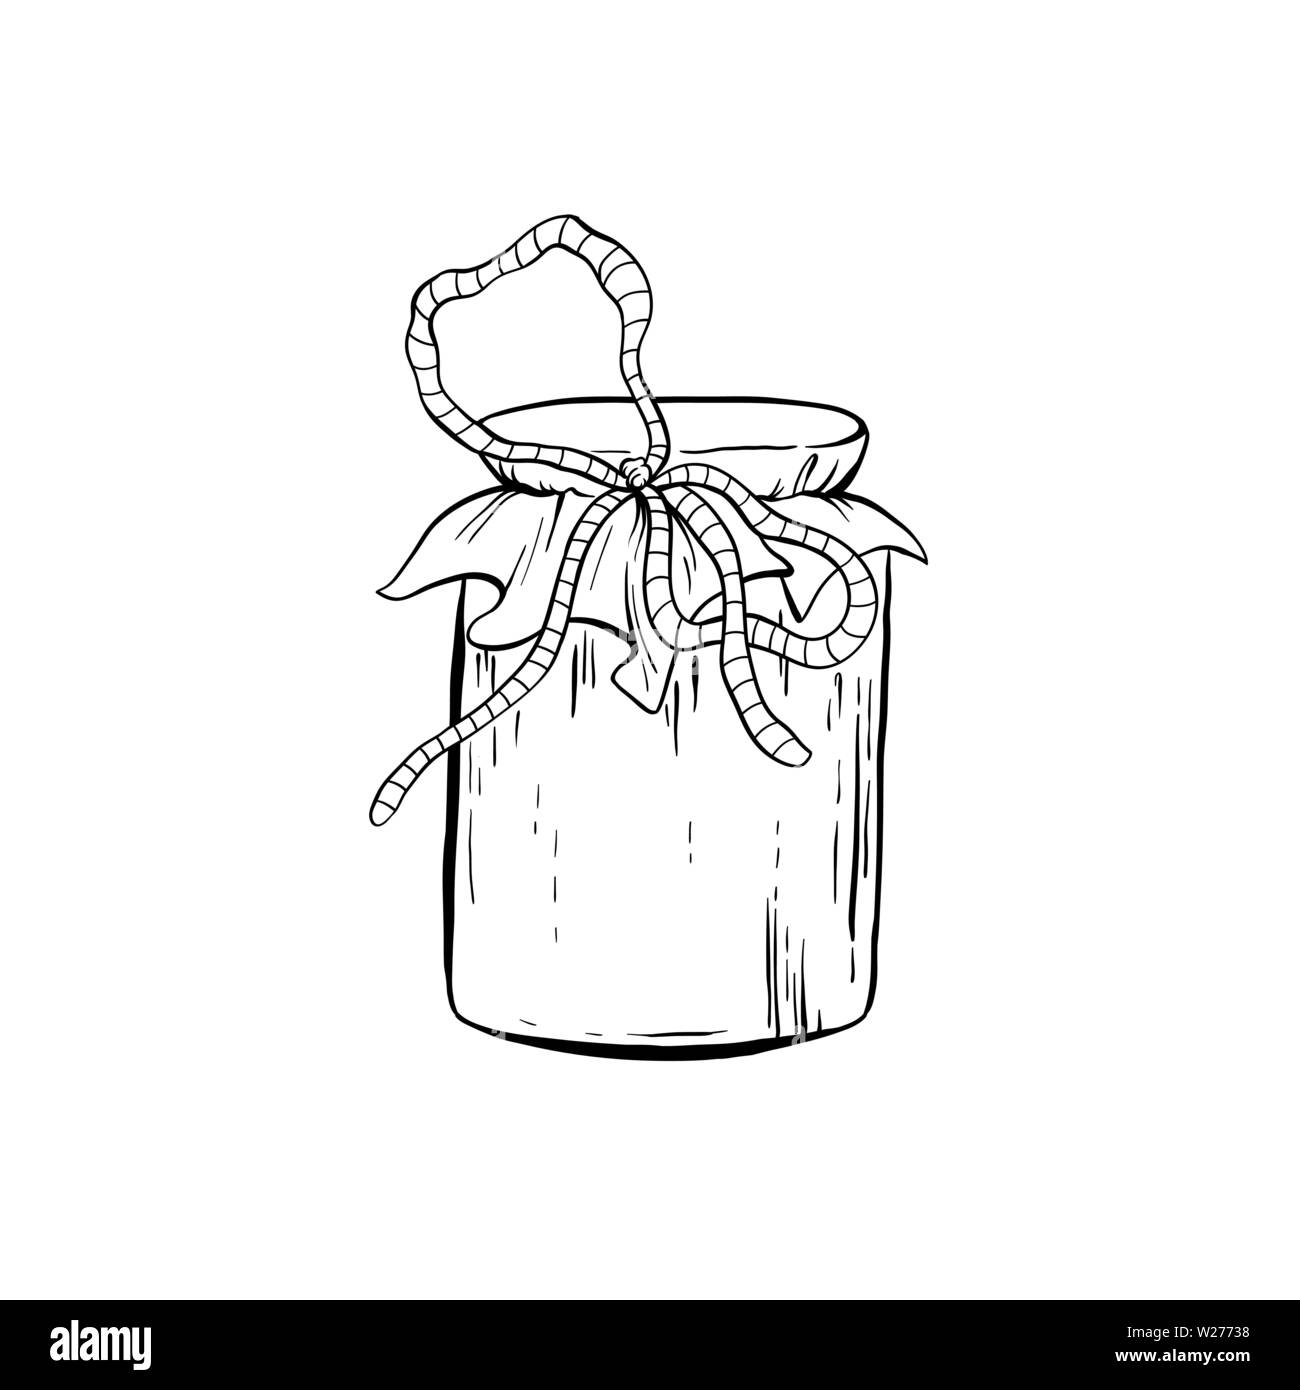 honey sketch glass jar with canned sweet food isolated vector illustration for logo design or poster W27738